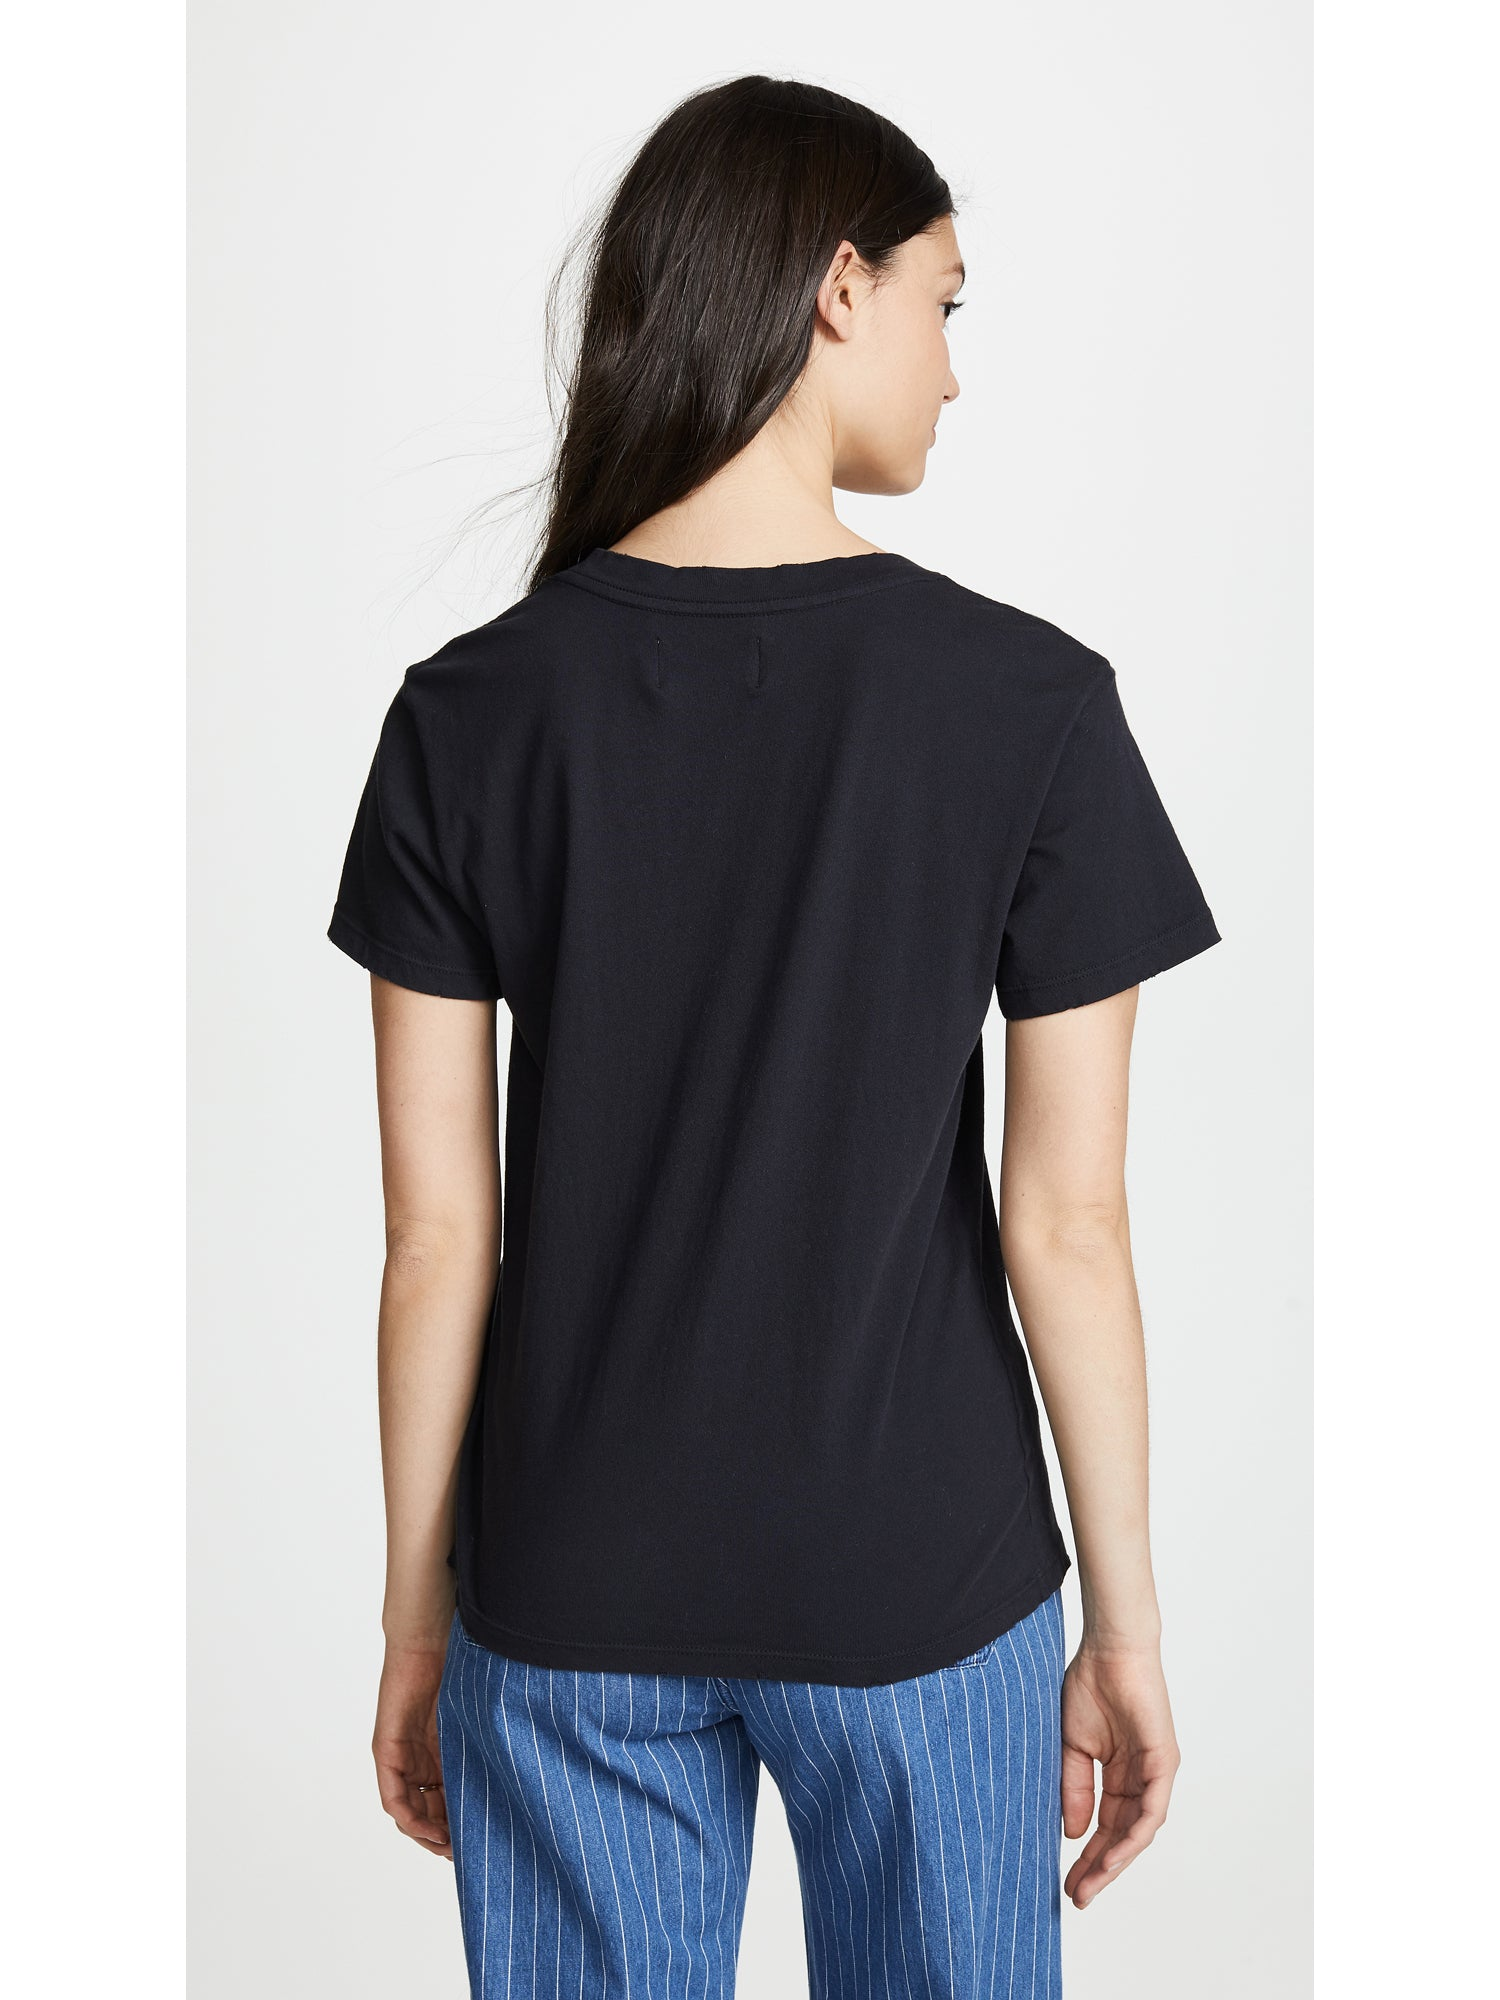 TILDEN | Current/Elliott Perfect V Tee